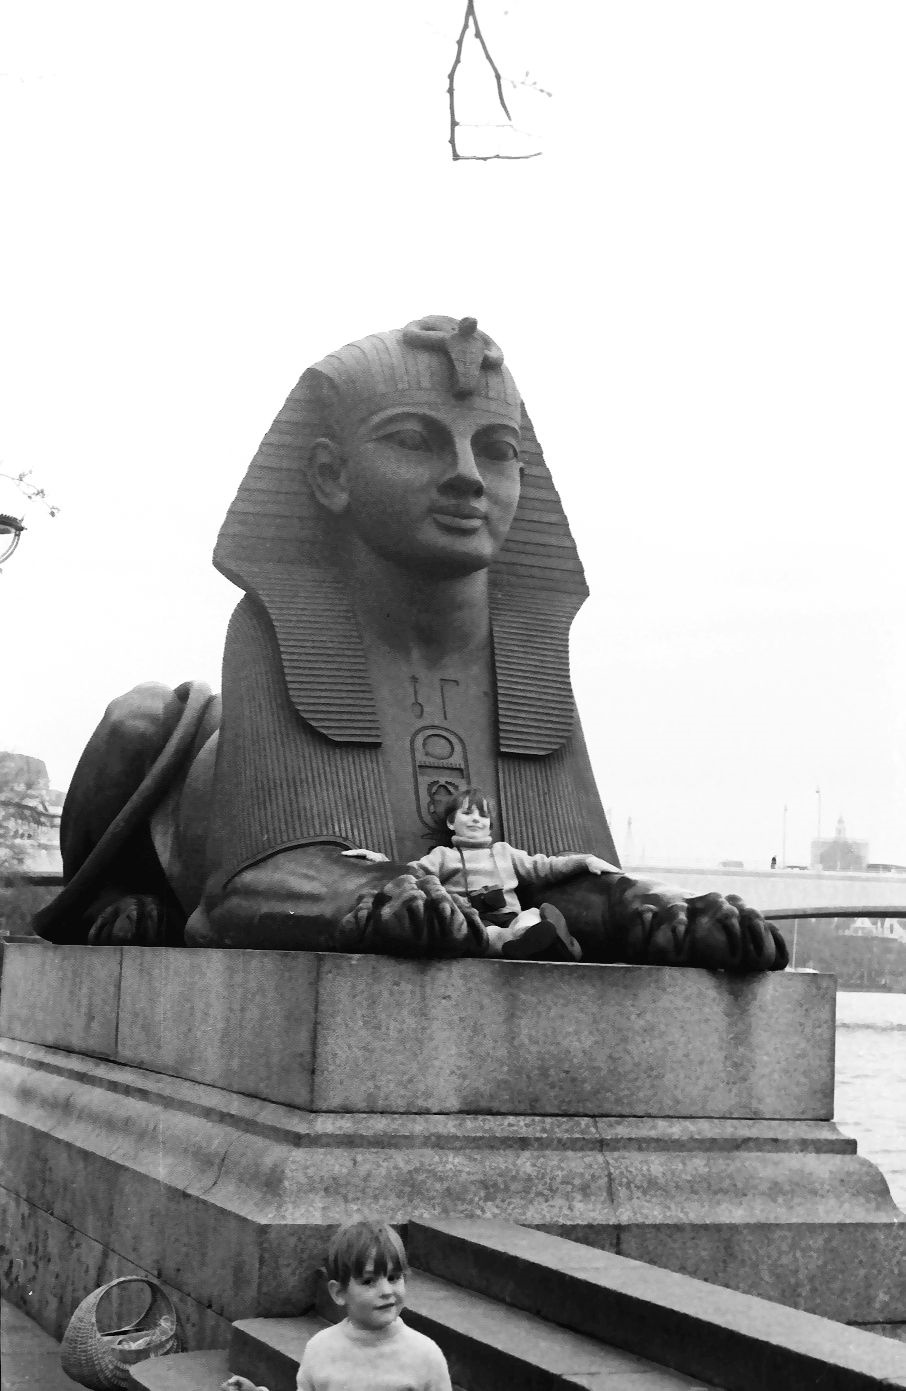 Danny Billy Sphinx